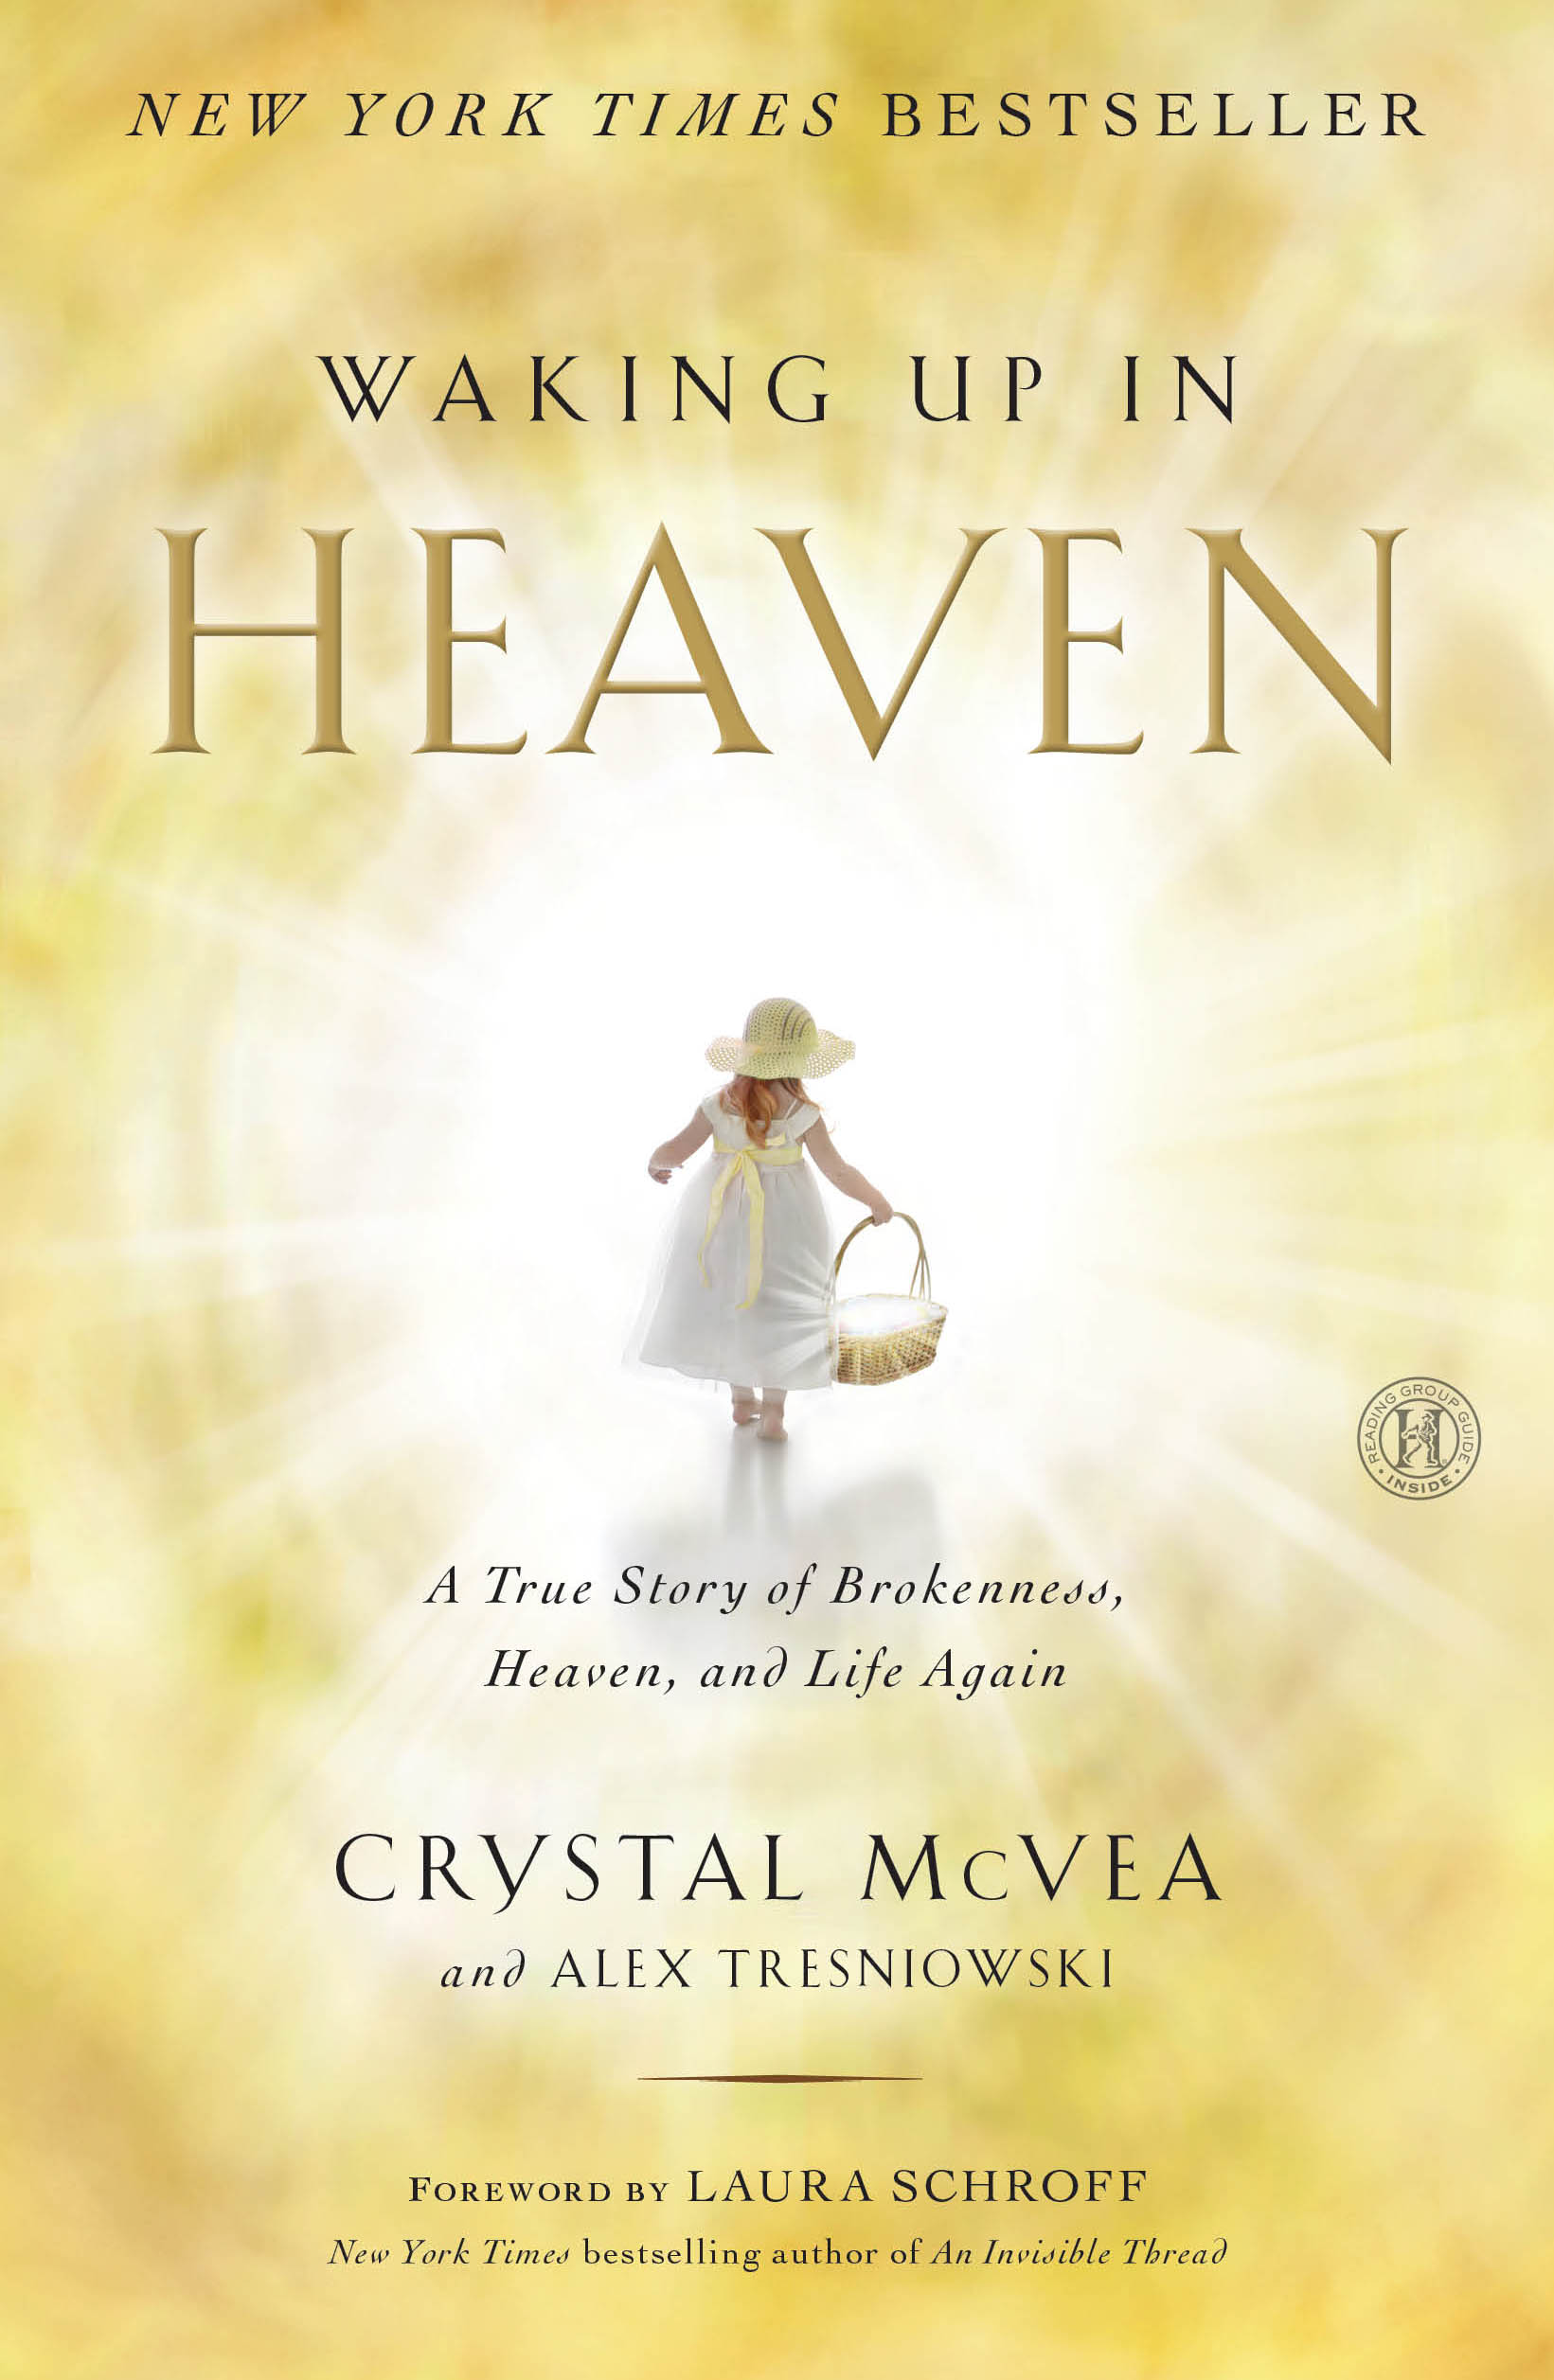 Missing My Mom In Heaven Quotes Waking Up In Heaven  Bookcrystal Mcvea Alex Tresniowski